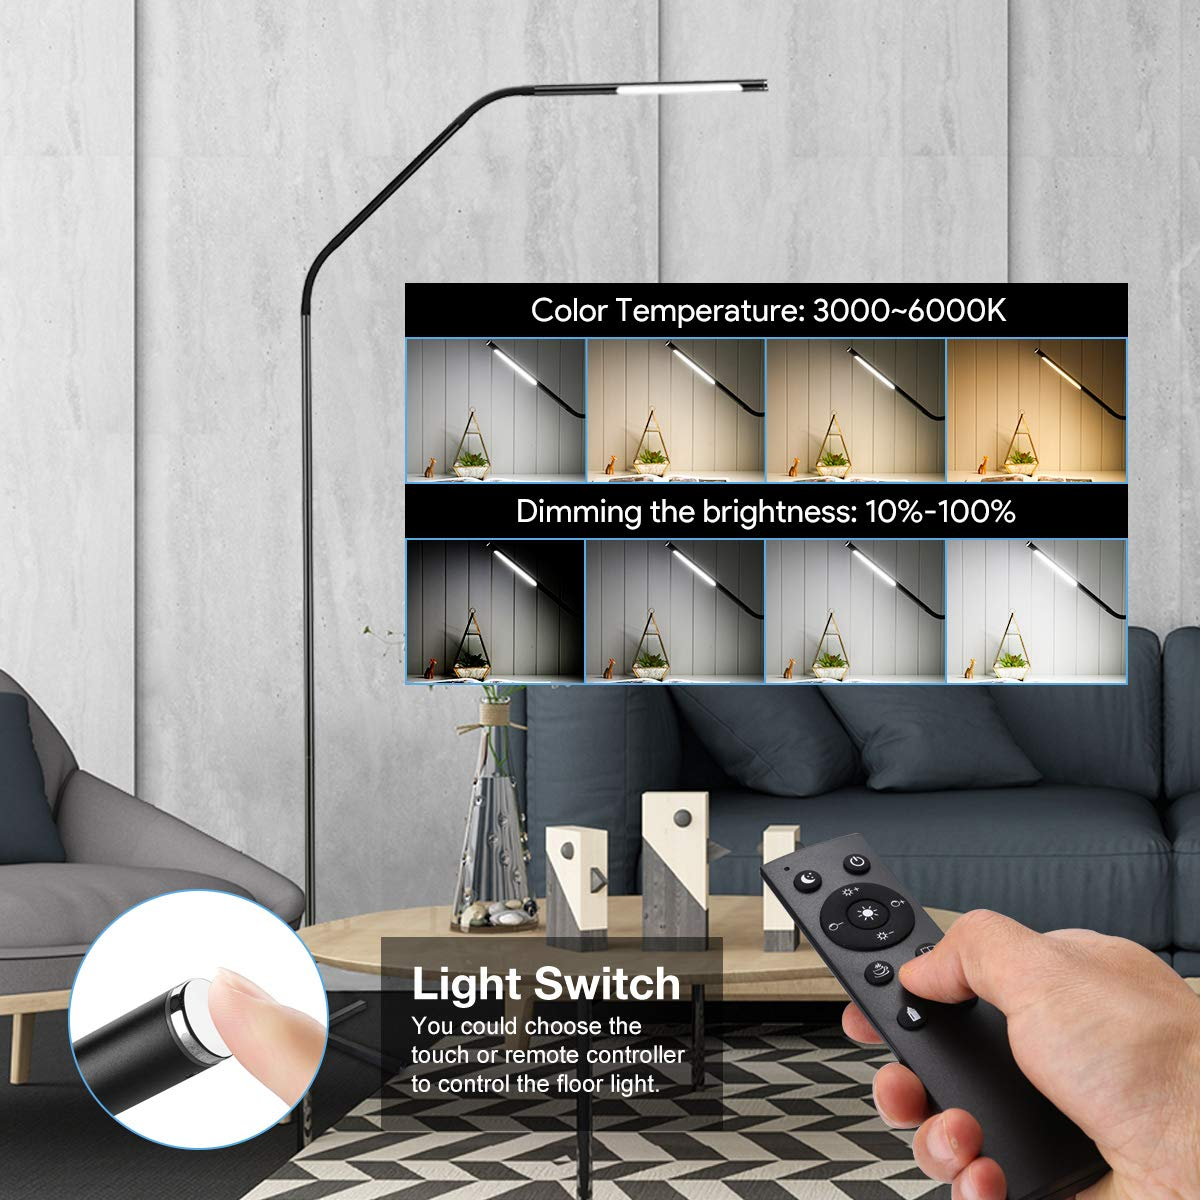 Full Size of Stehlampe Wohnzimmer Dimmbar Led Holz Le 6w Stufenlos Metall Stehleuchte Faltbare Stehlampen Indirekte Beleuchtung Deckenlampen Modern Teppich Deckenleuchten Wohnzimmer Stehlampe Wohnzimmer Dimmbar